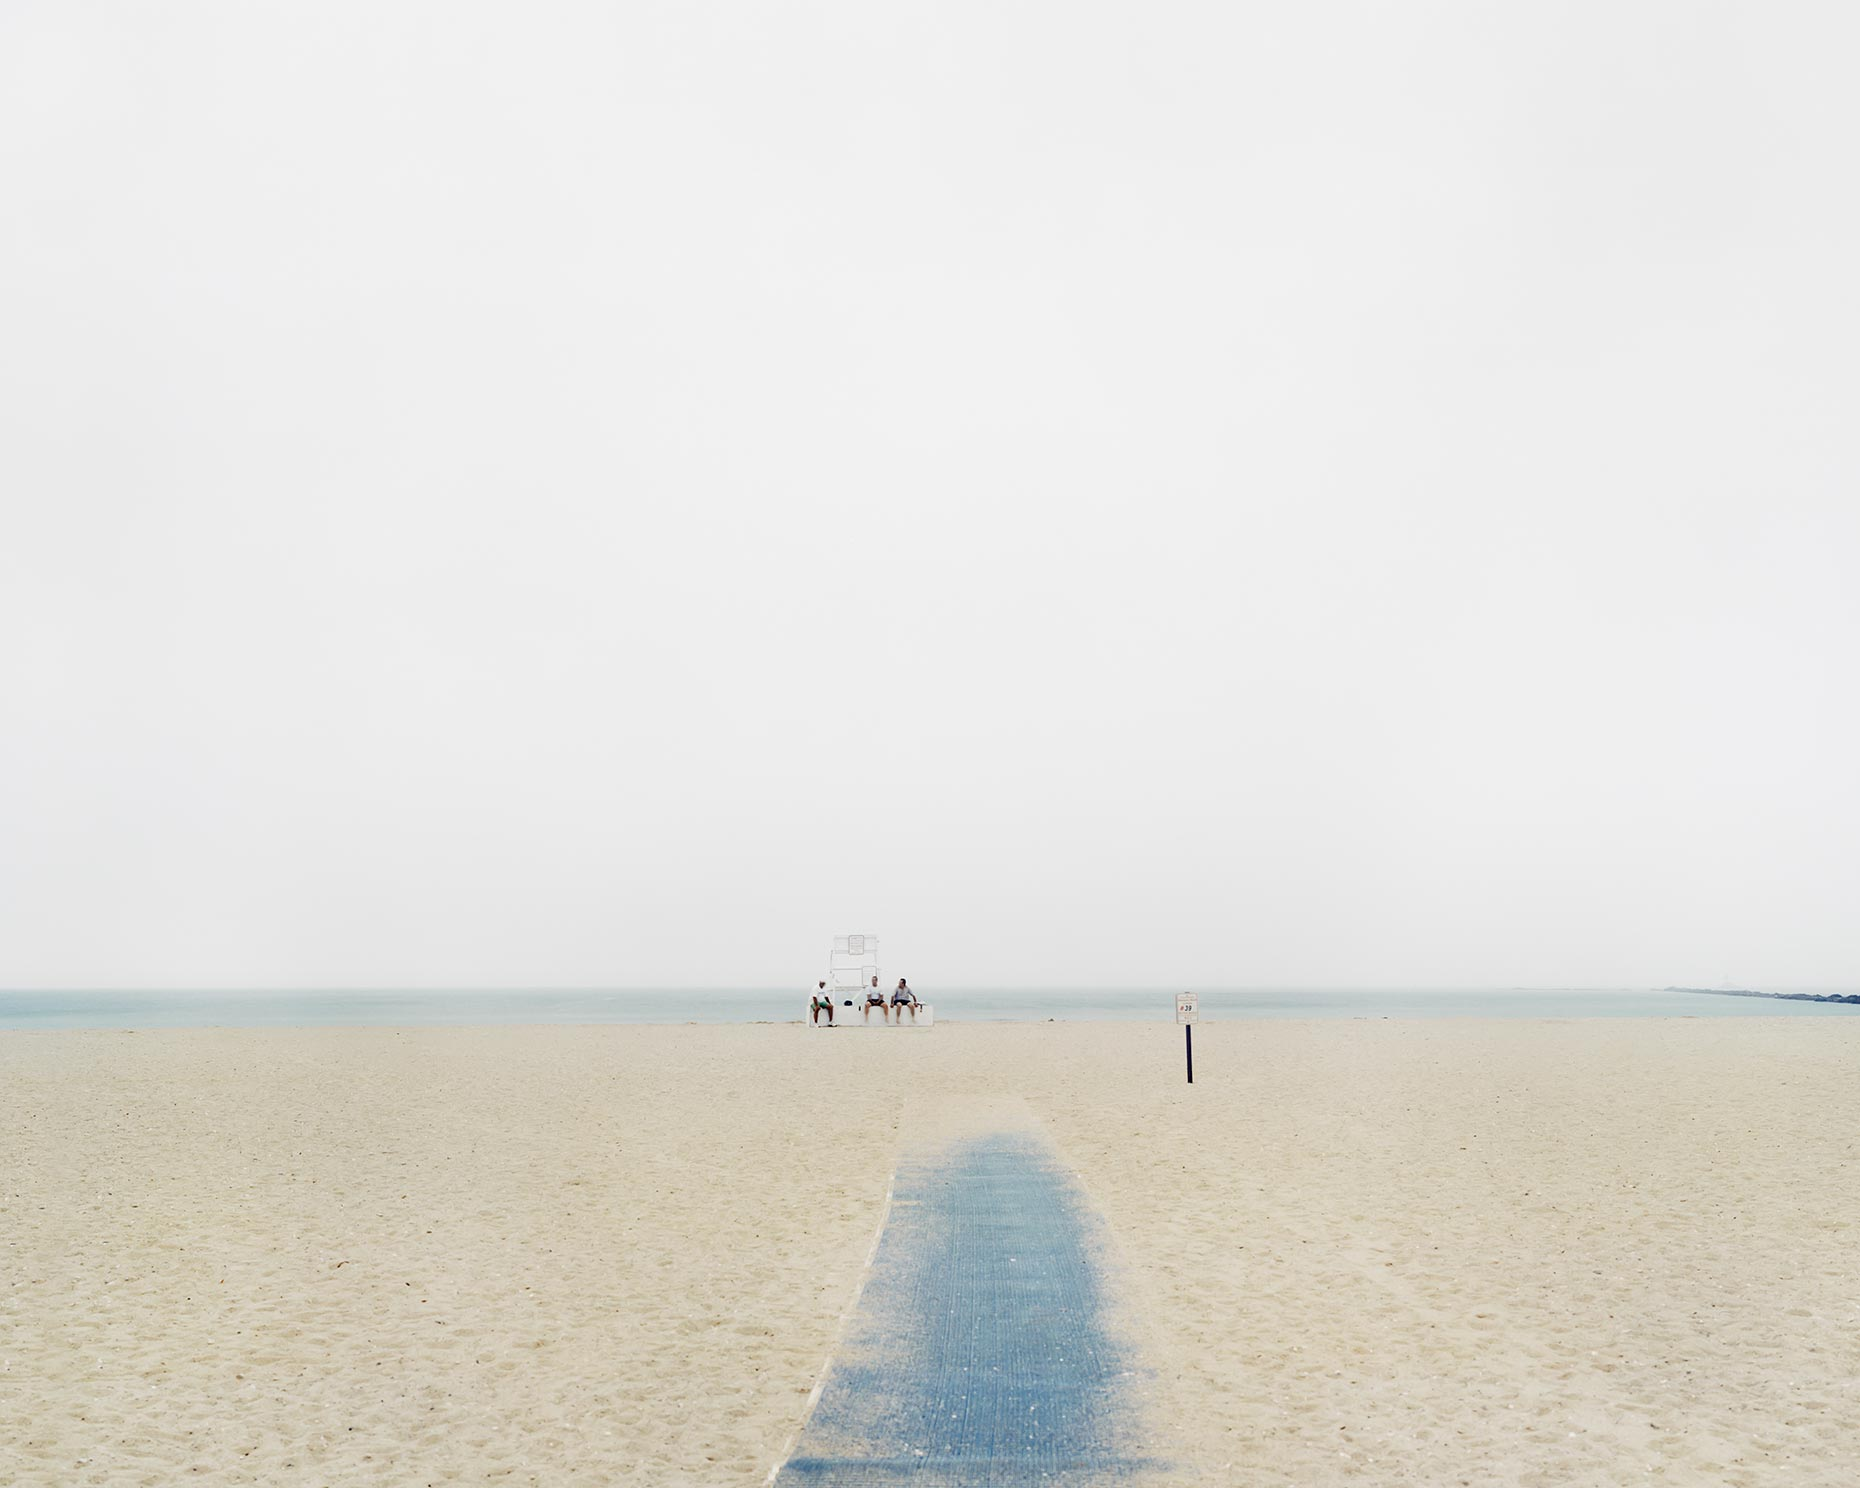 Jetties  |  Nantucket  |  Michael Gaillard